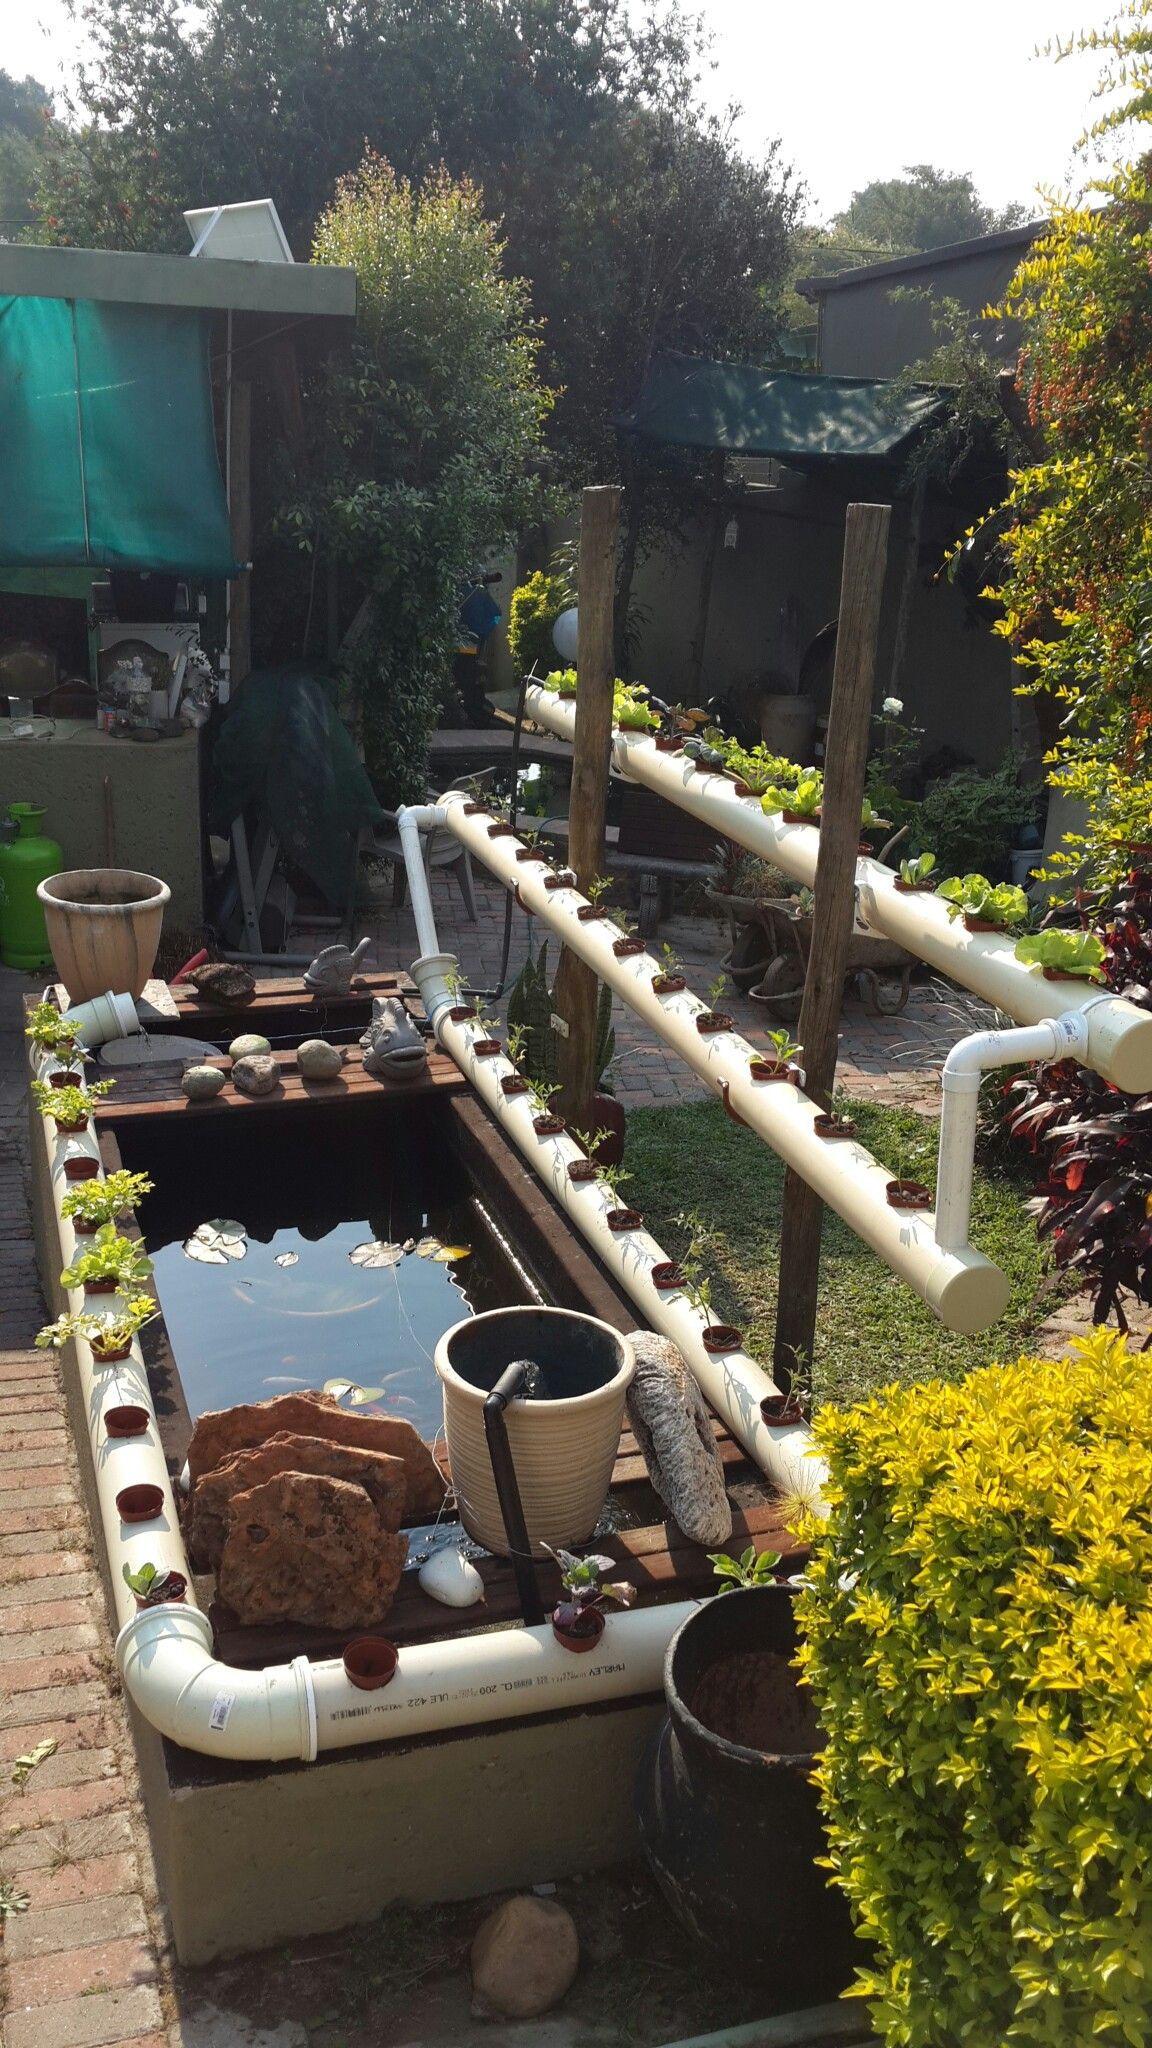 Koi pond combined with vegetable and herbs